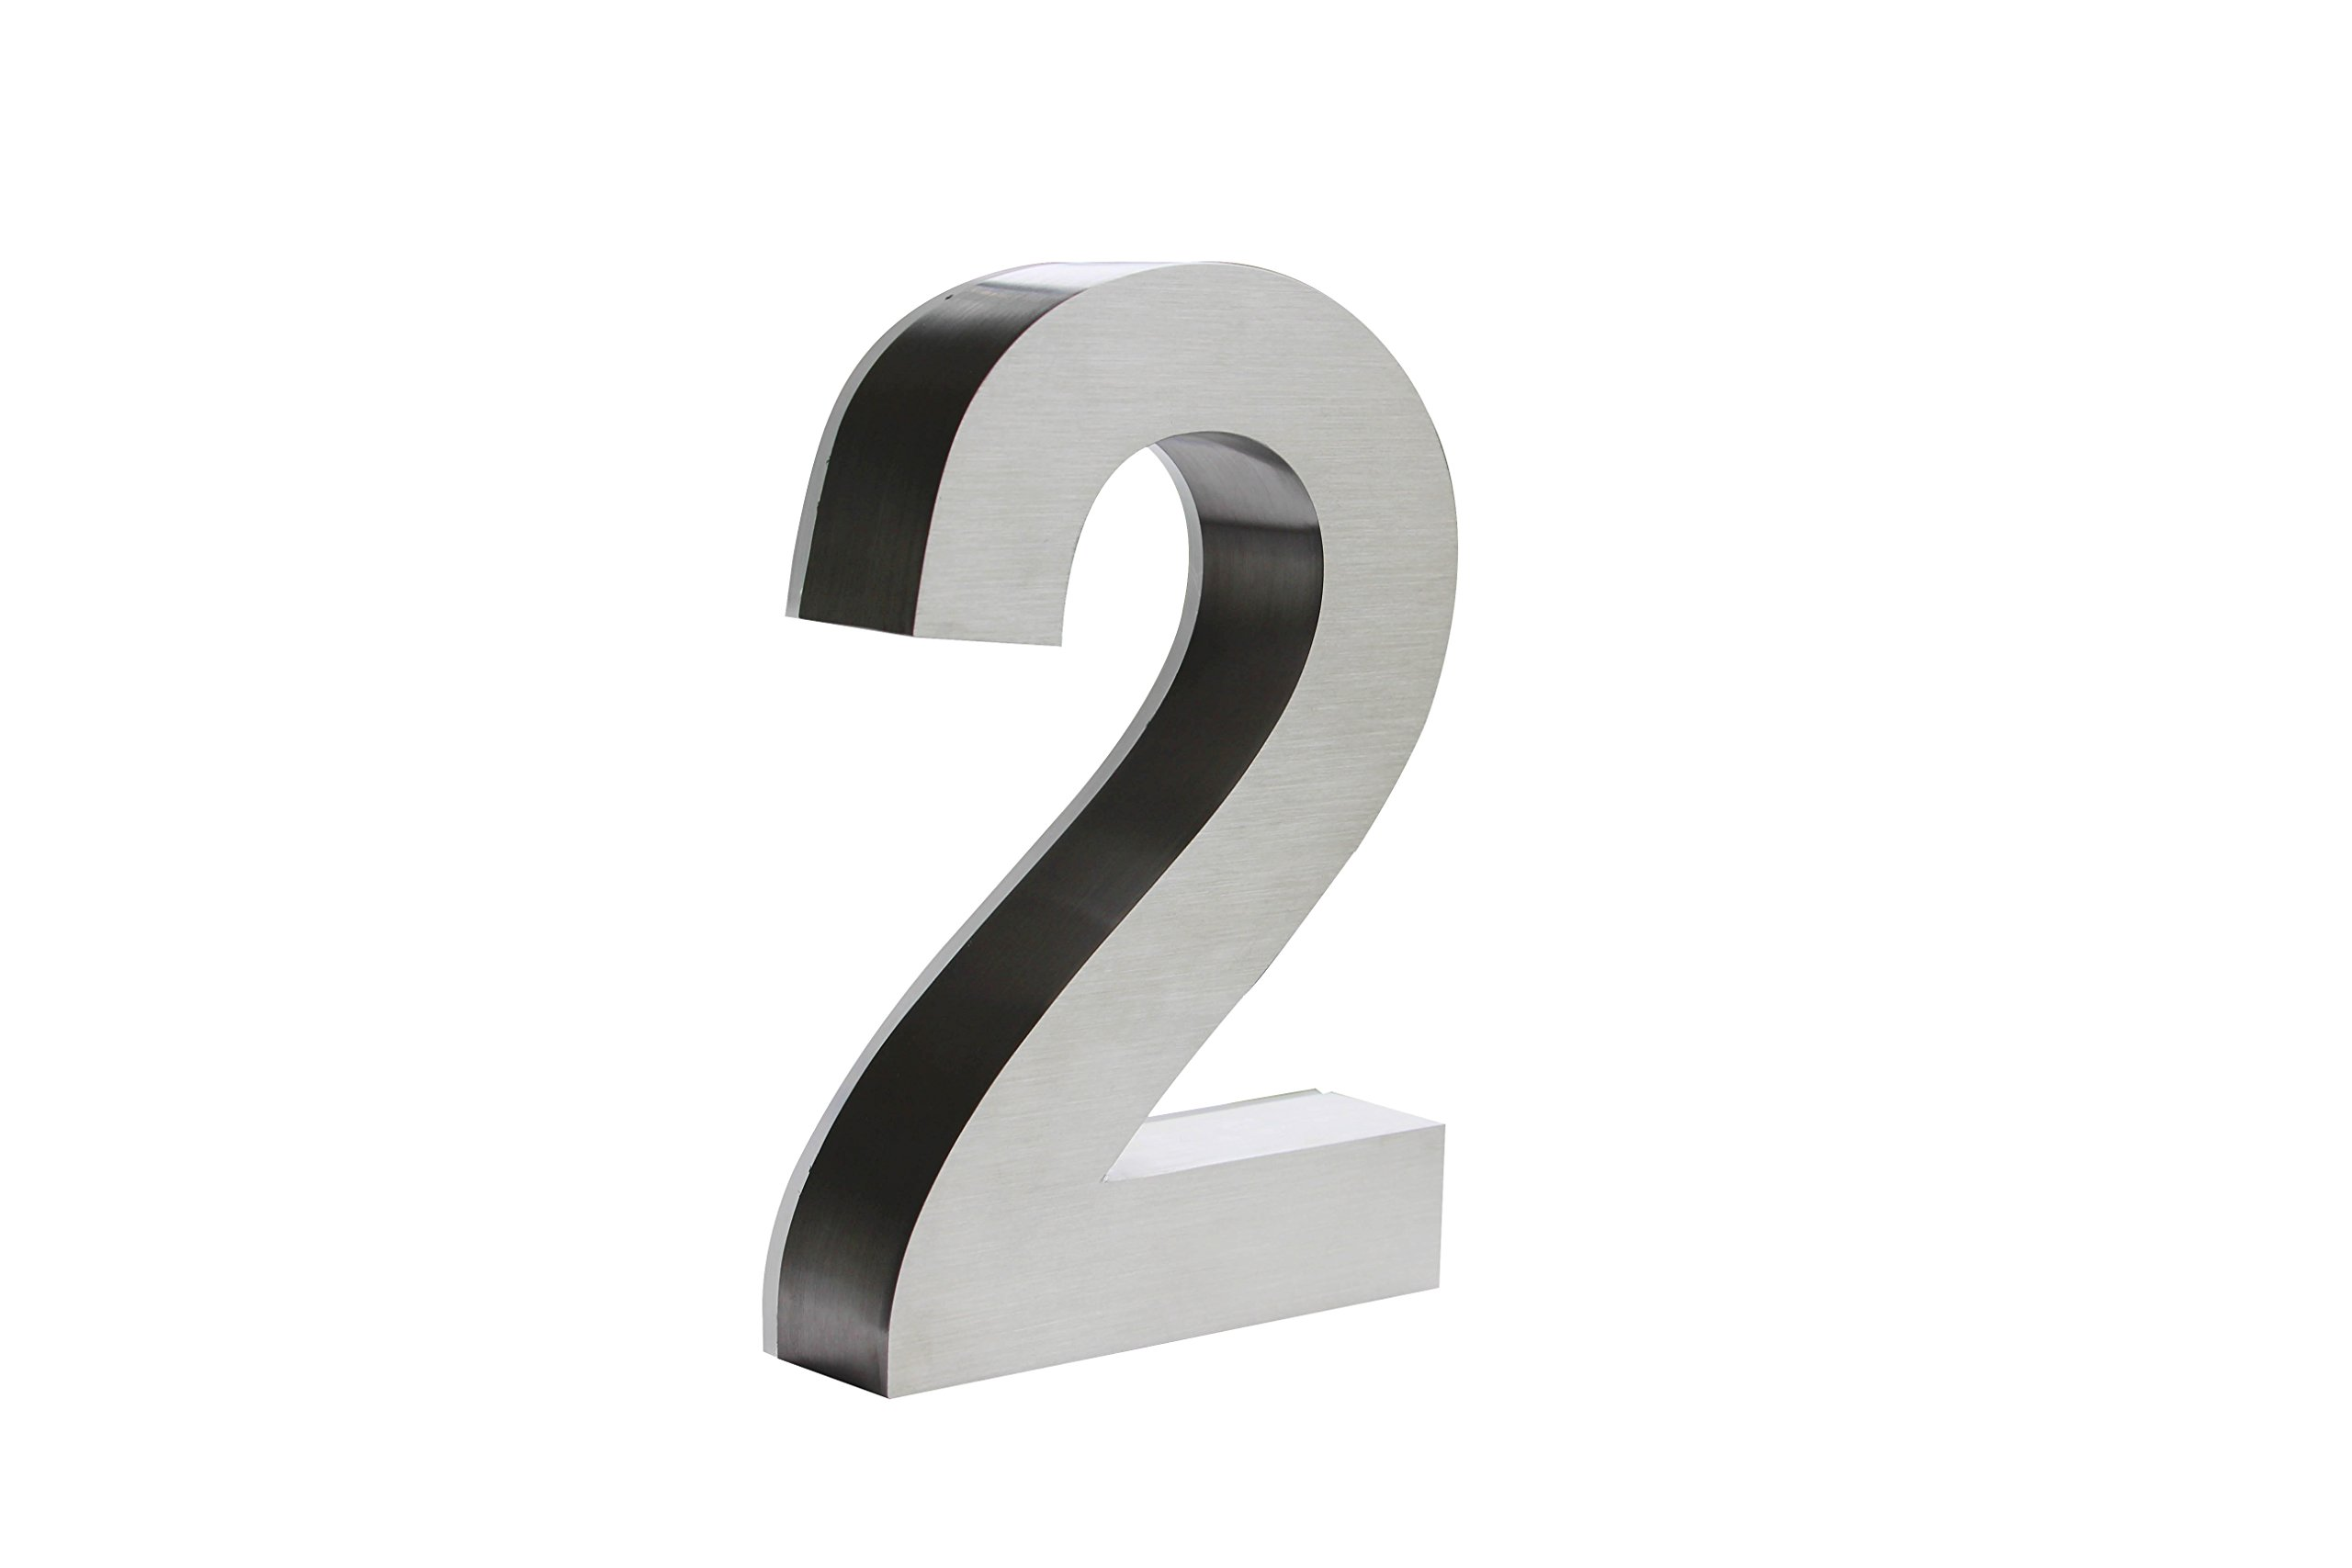 Backlit LED House Numbers (8 inch White) Big, Modern Address Signs for Homes | Soft, Exterior Glow | Brushed Stainless-Steel Finish | Weather Resistant, Durable, Wired | by JELSCO (2)